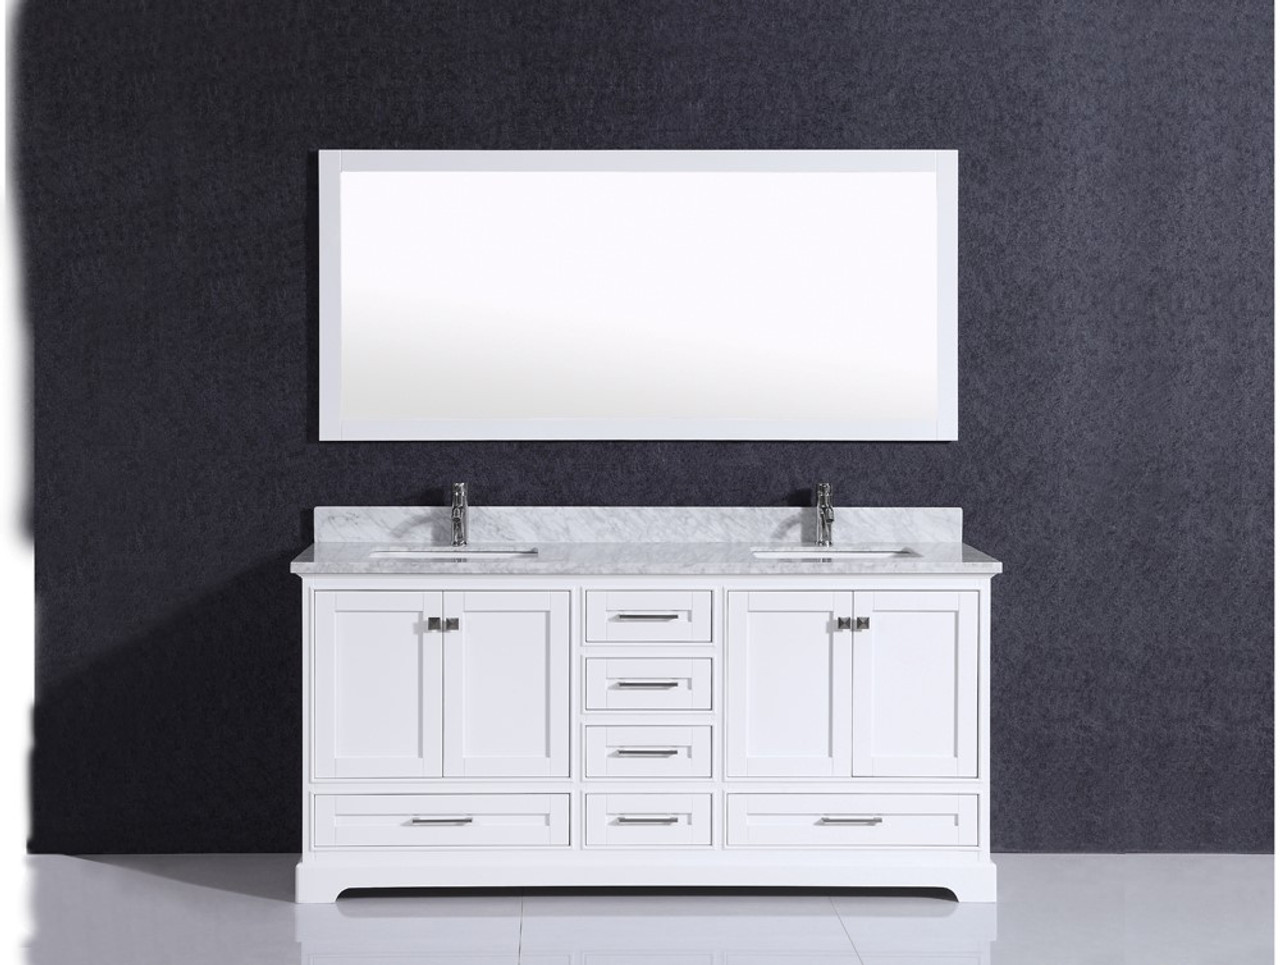 Superb Orlando 72 Double Sink Bathroom Vanity White Home Interior And Landscaping Synyenasavecom